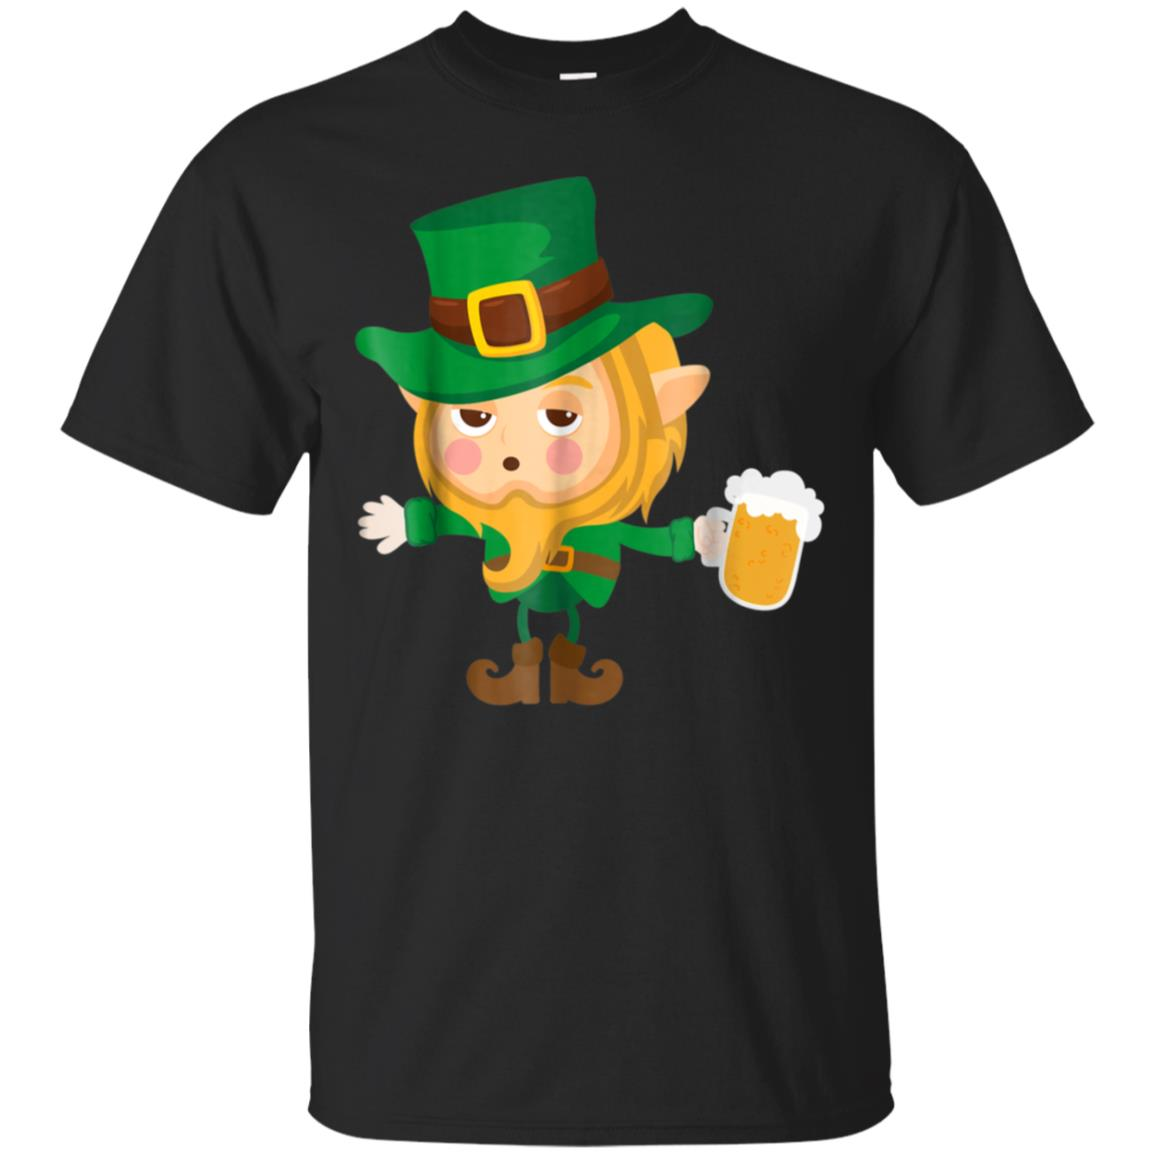 Cute Drunk Elf T-Shirt On Cool St. Patrick's Day For Kids 99promocode